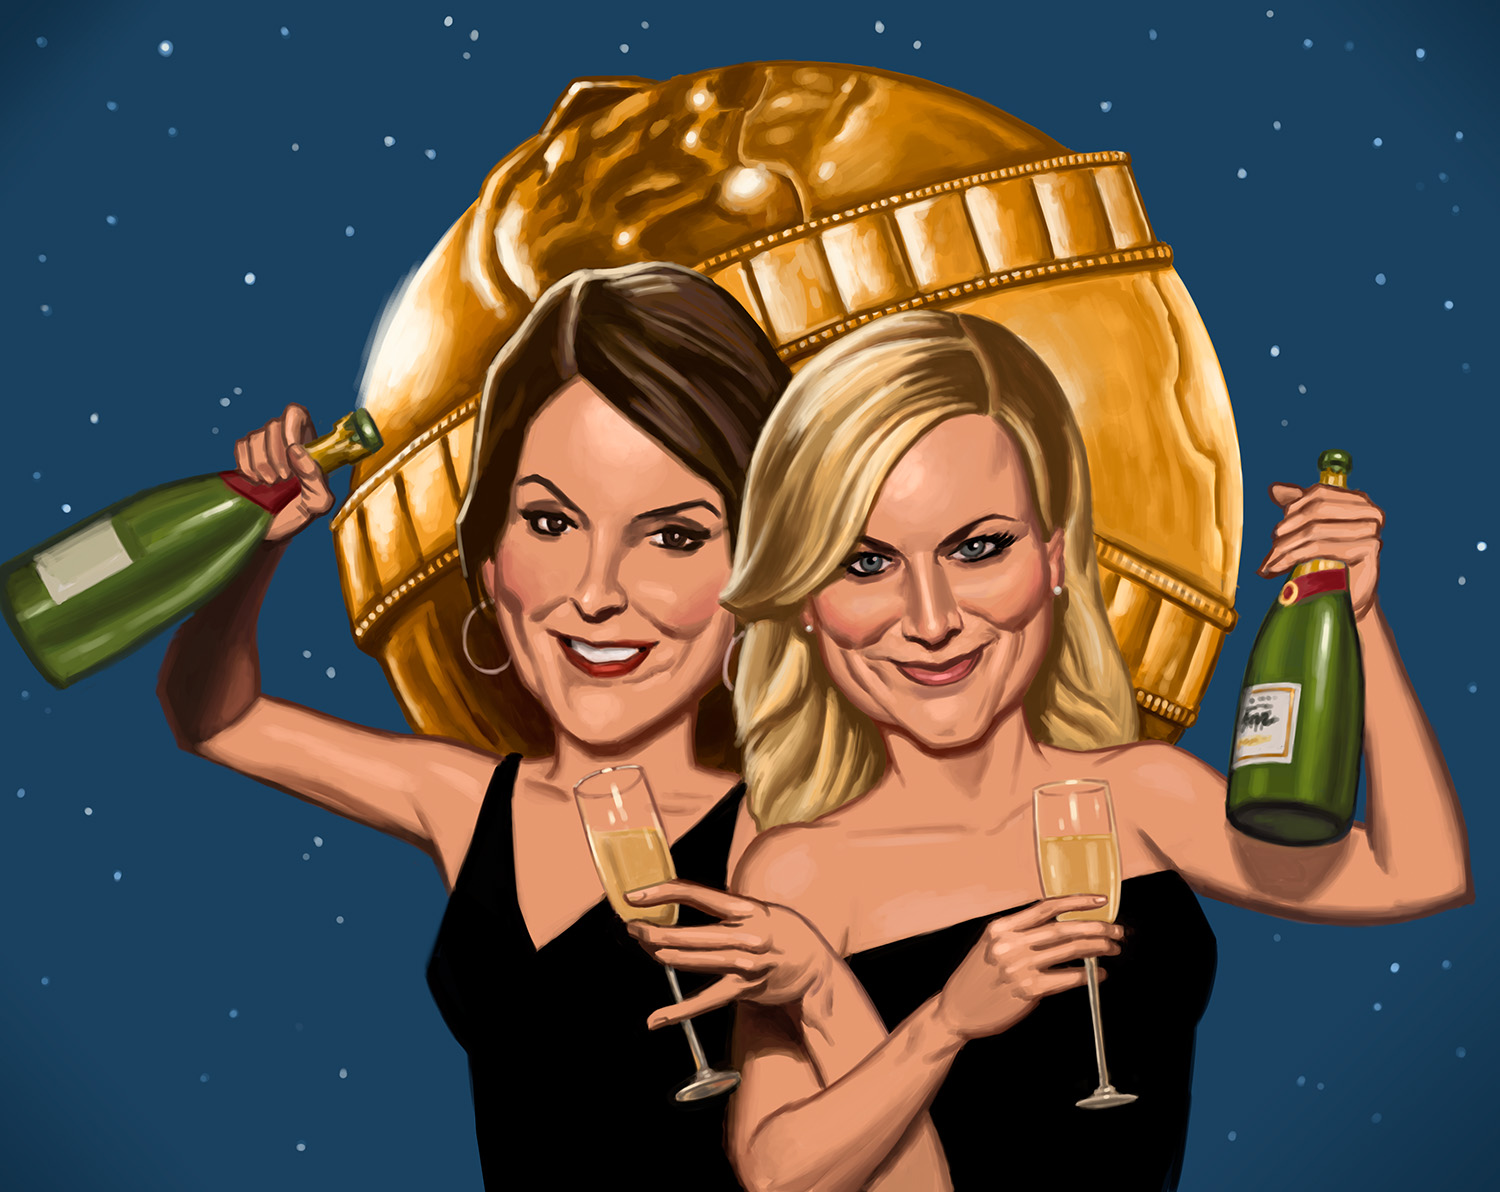 Tina Fey and Amy Poehler celebrate their last turn as hosts for the boozy Golden Globe awards